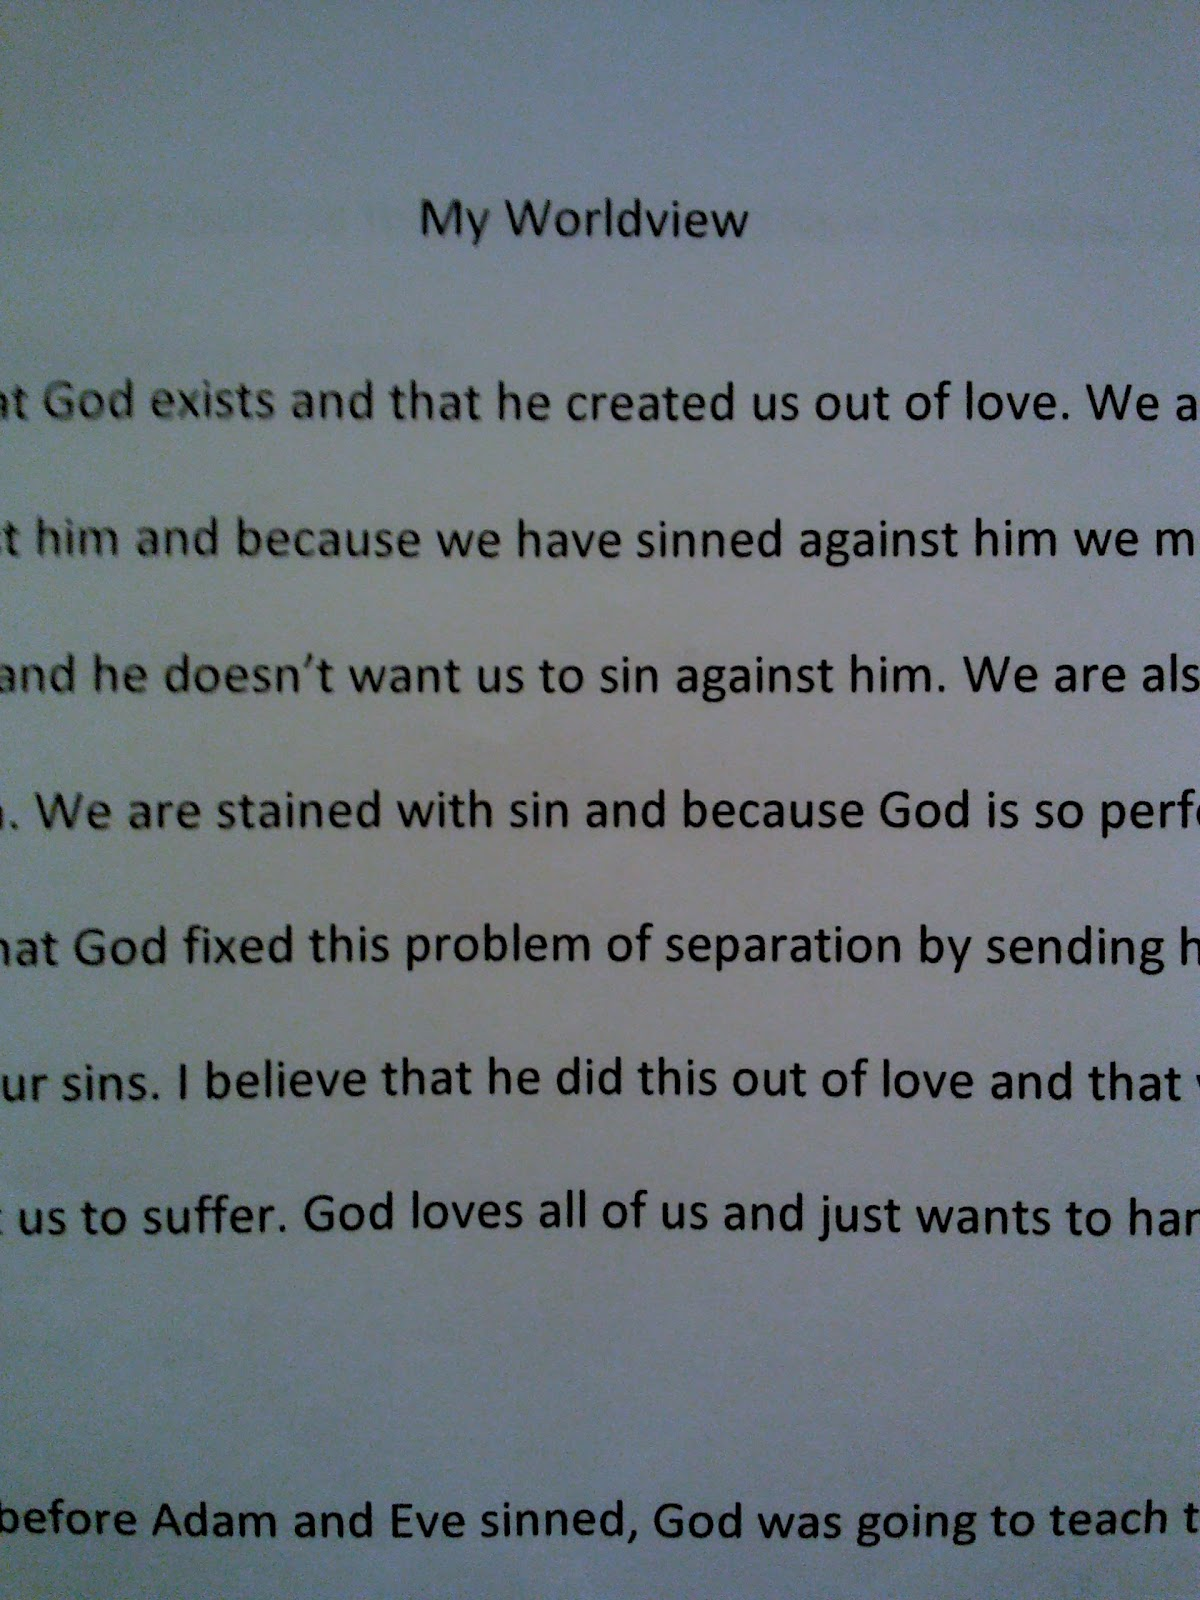 worldview paper essay A world view or worldview is the fundamental cognitive orientation of an  individual or society  participants were asked to read an essay which argued in  support of the theory of evolution, following which the same measure of  a  paper examining the concept of worldview as it relates to and has been used by  christianity.